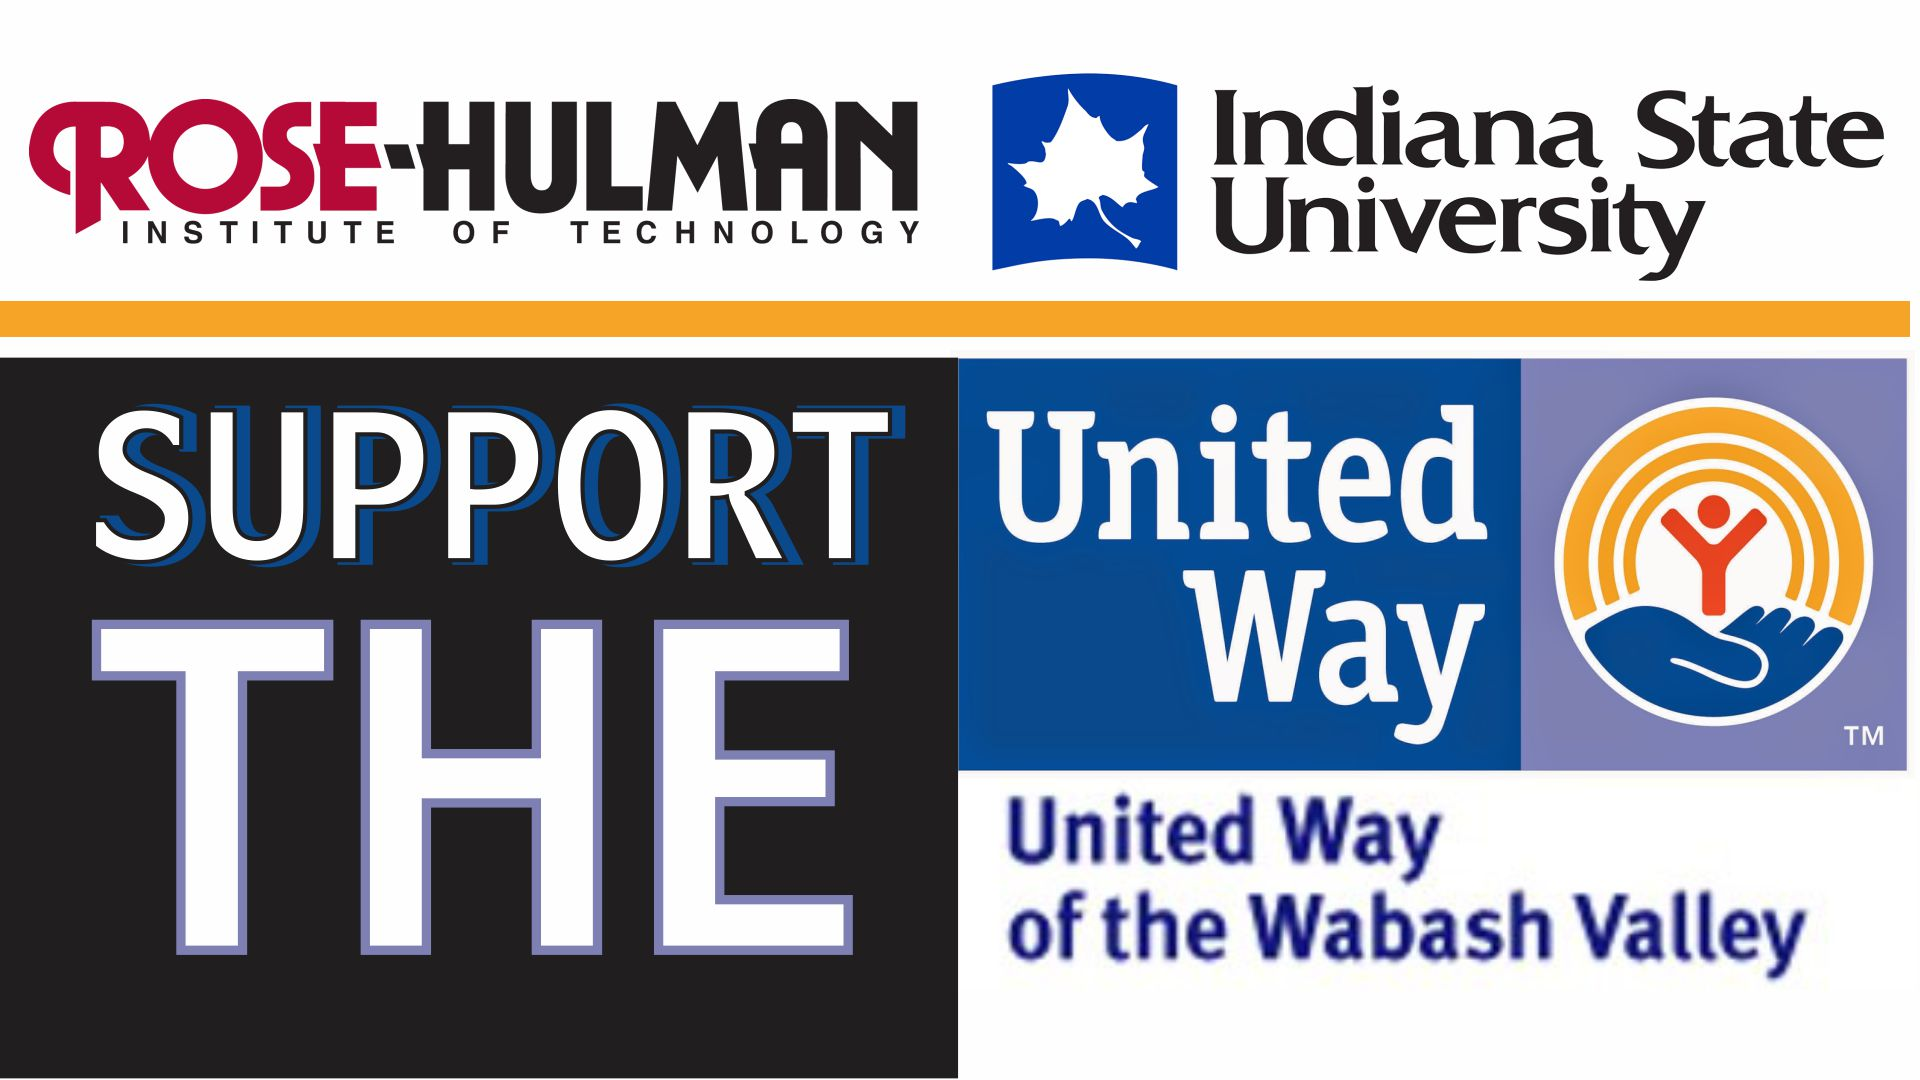 United Way Ad